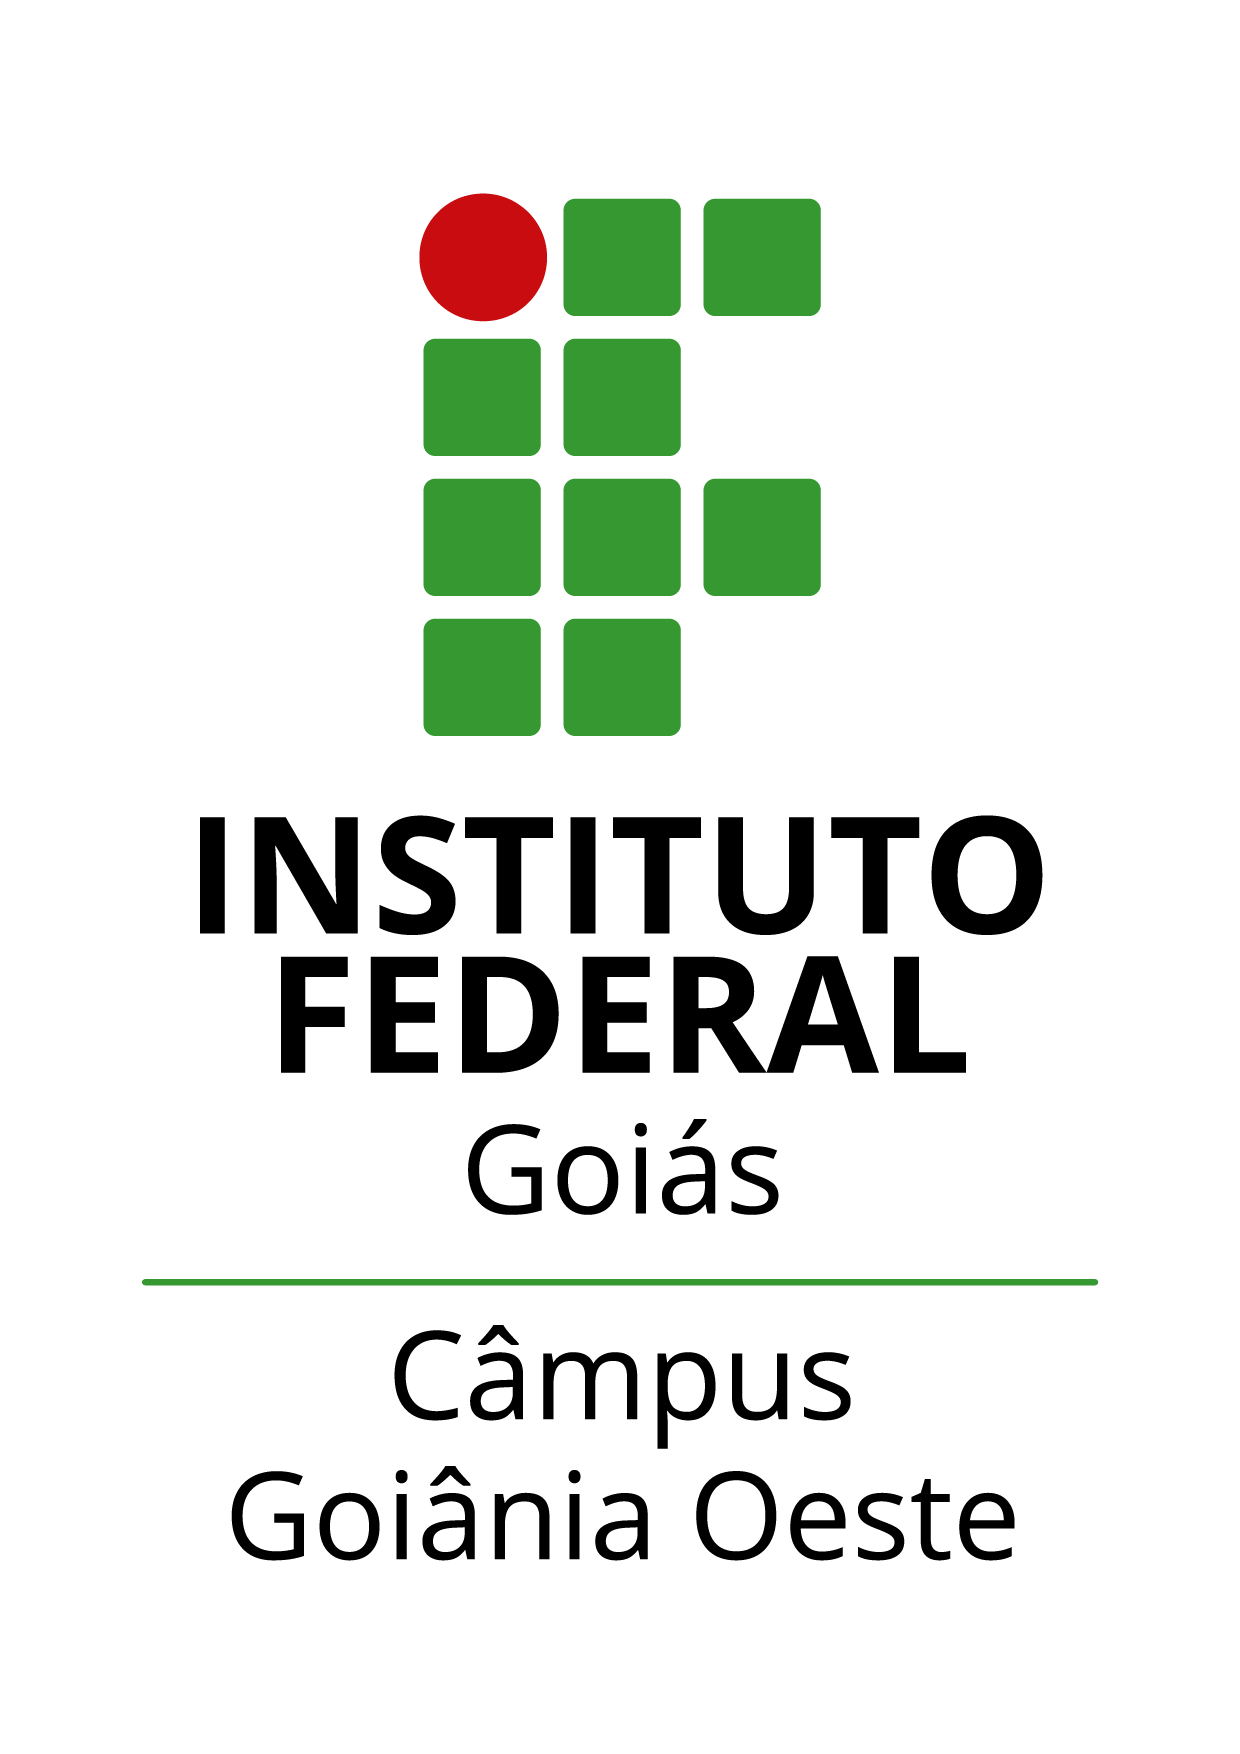 Logo do IFG - Câmpus Goiânia Oeste